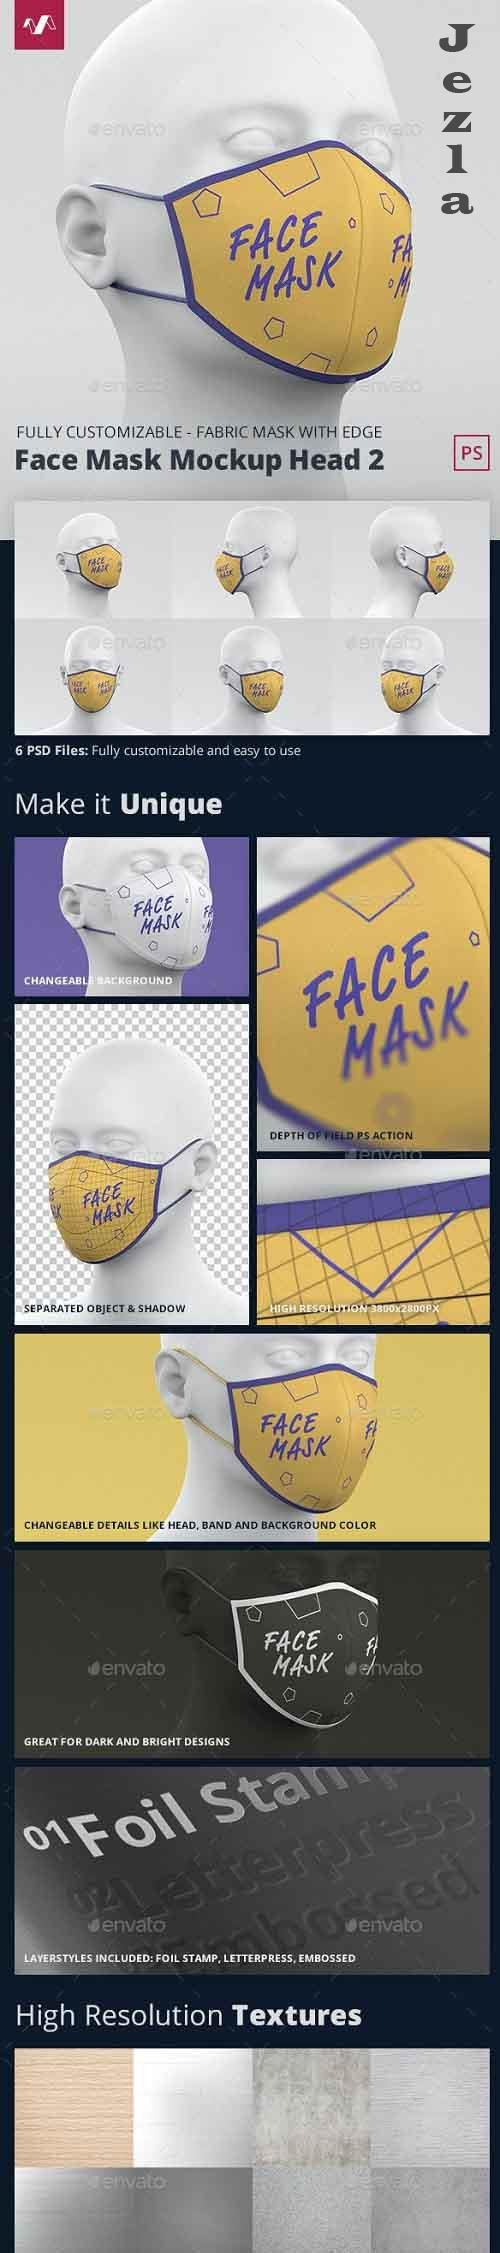 GraphicRiver - Face Mask Mockup Head Fabric 2 30470466